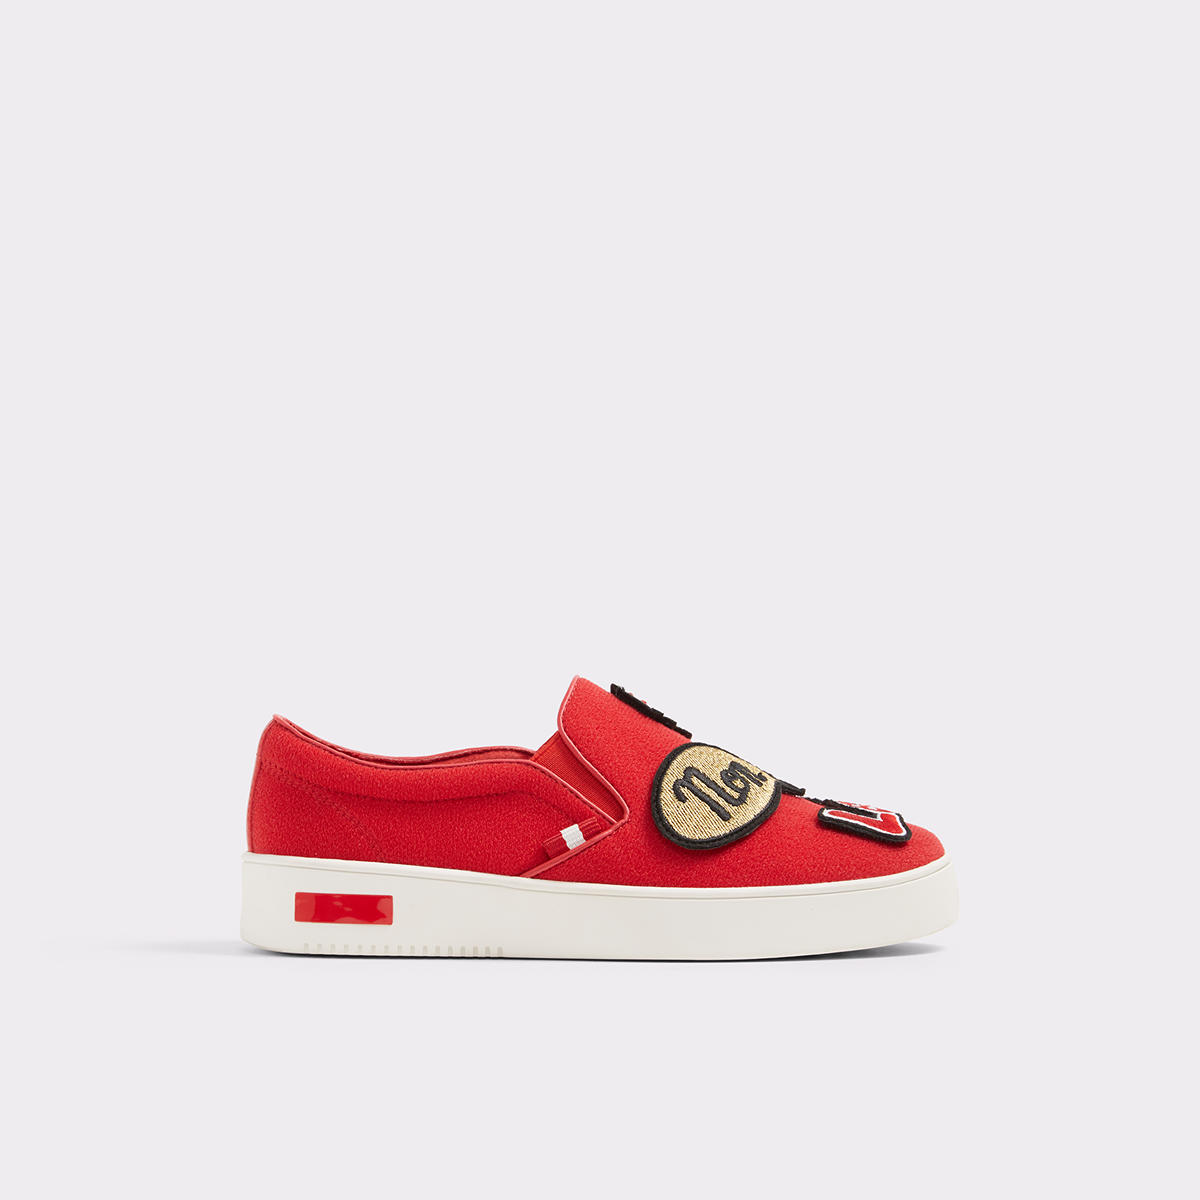 NEW ALDO WOMENS KEACIEN - RED